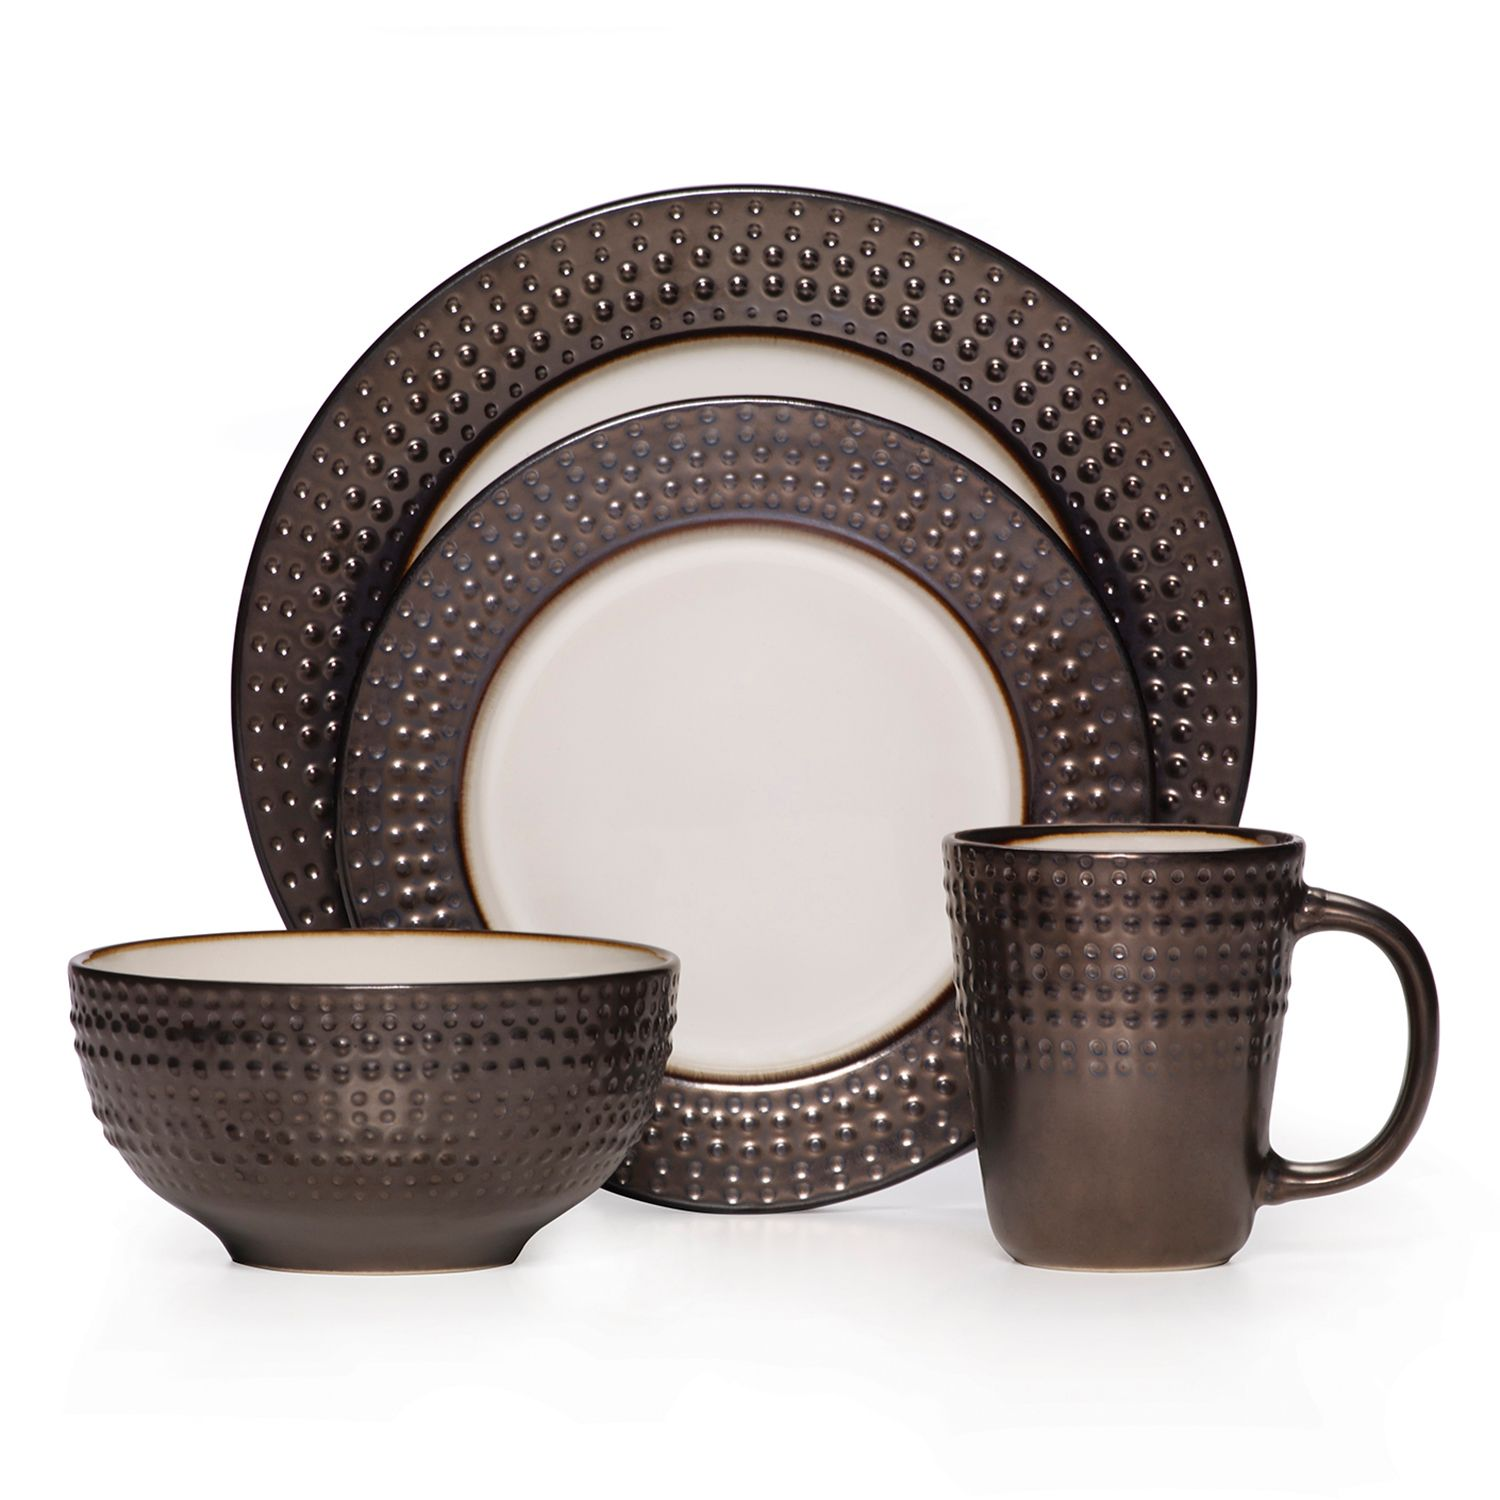 sc 1 st  Kohlu0027s & Mikasa Gourmet Basics Avery 16-pc. Dinnerware Set